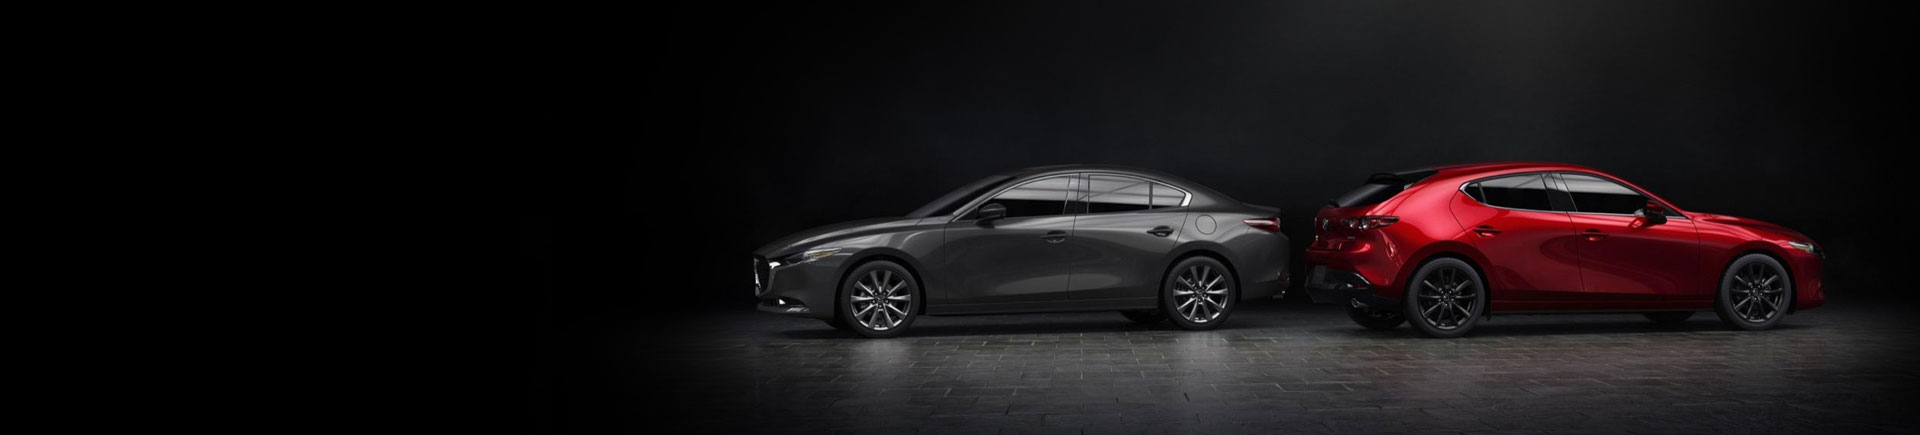 /i/Images/slideshow/Banner_MacaulayMazda3_Dec.jpg